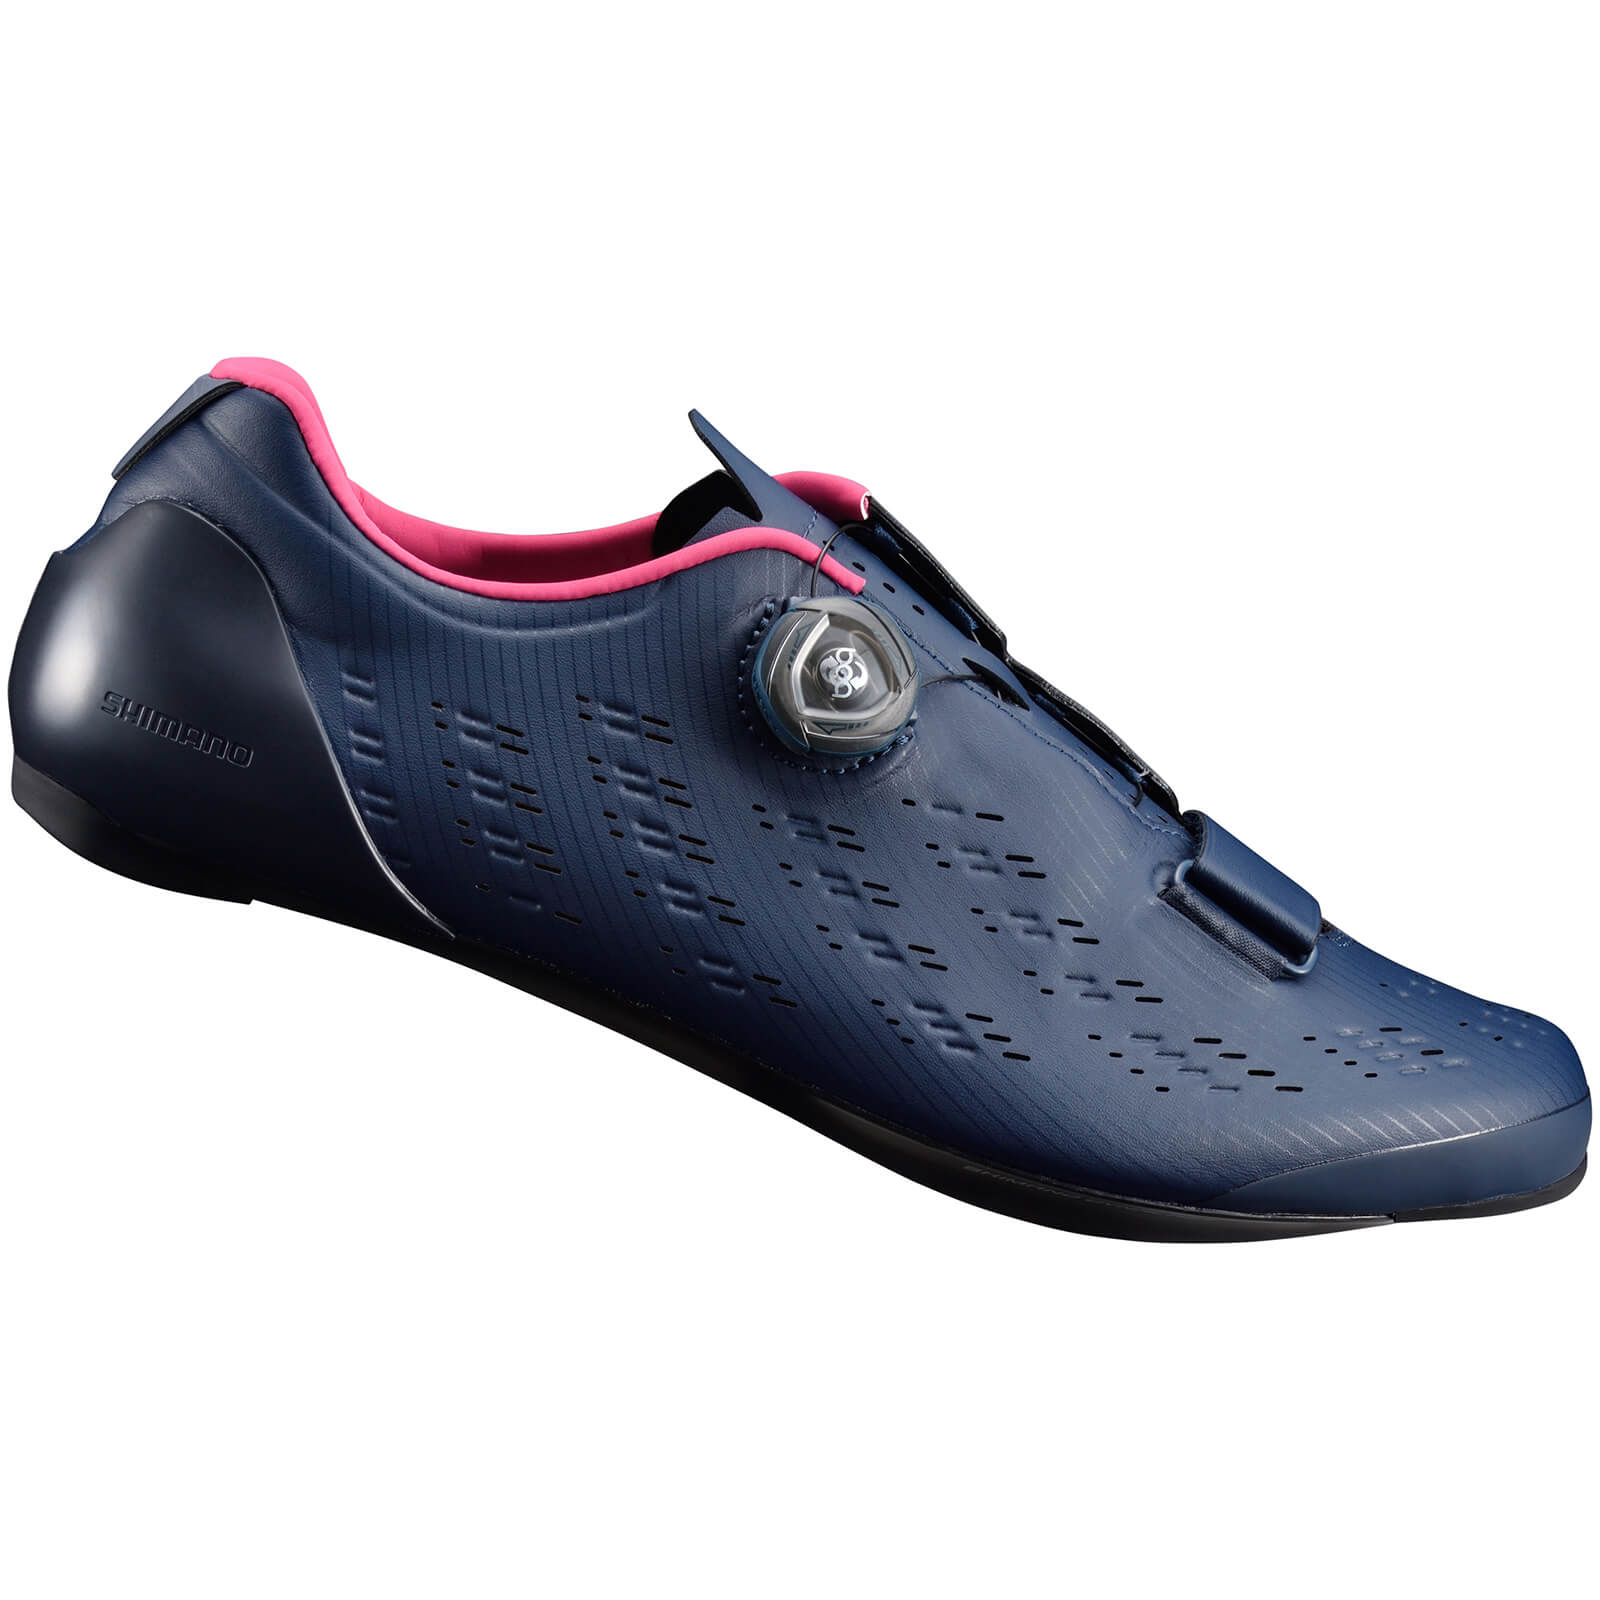 Shimano RP9 Road Shoes Carbon Sole - Navy